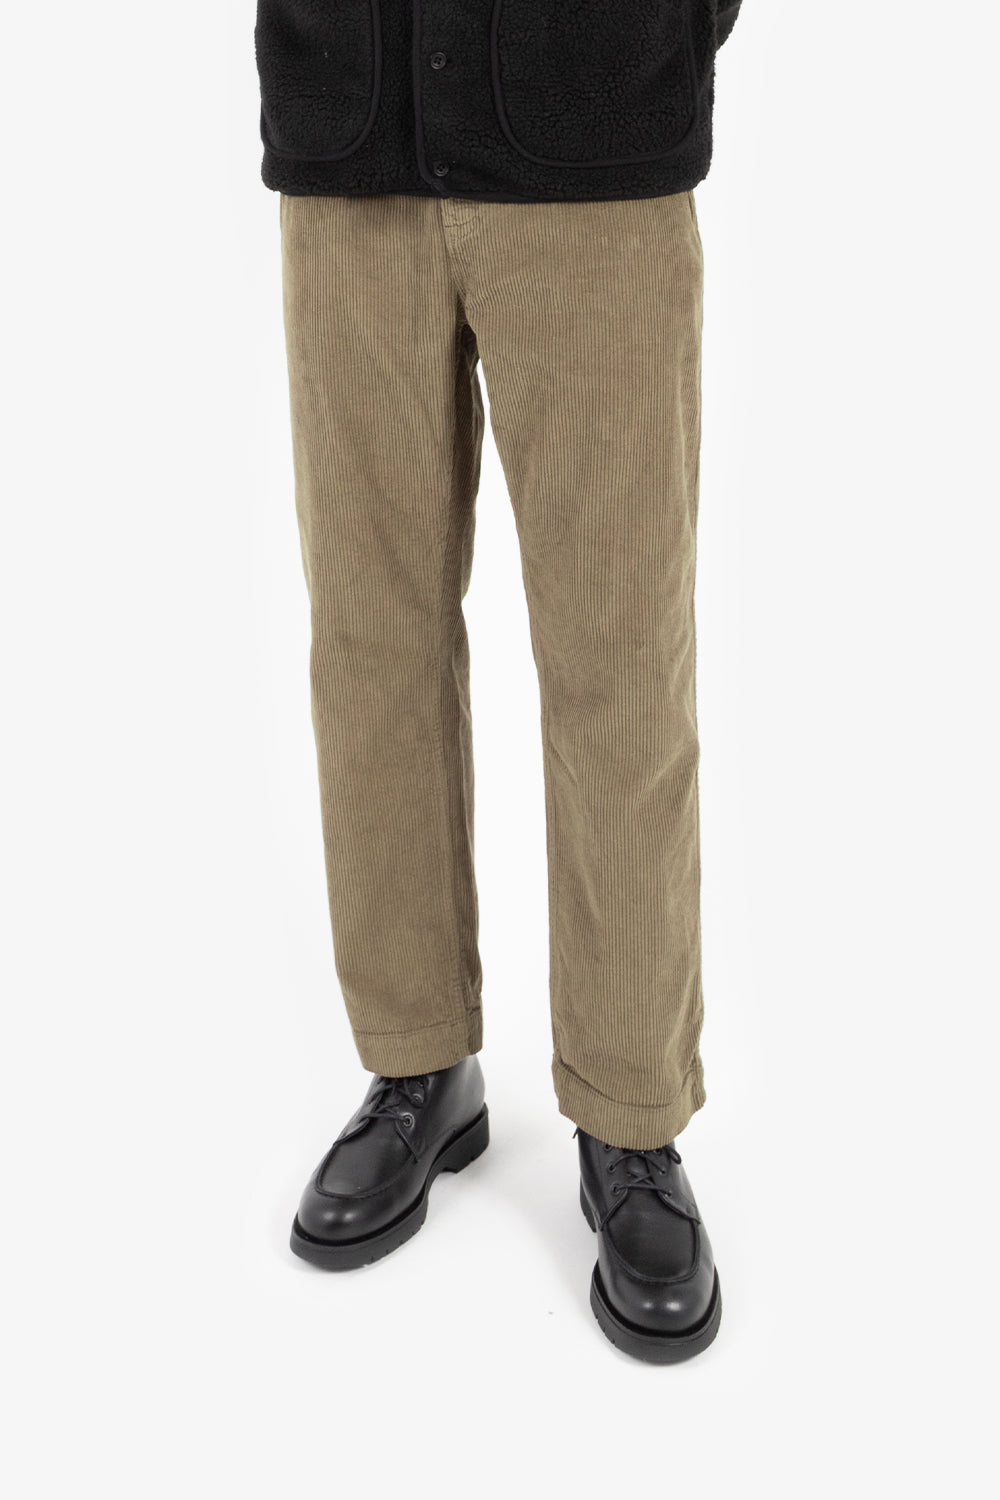 kestin aberlour carpenter pant dark olive